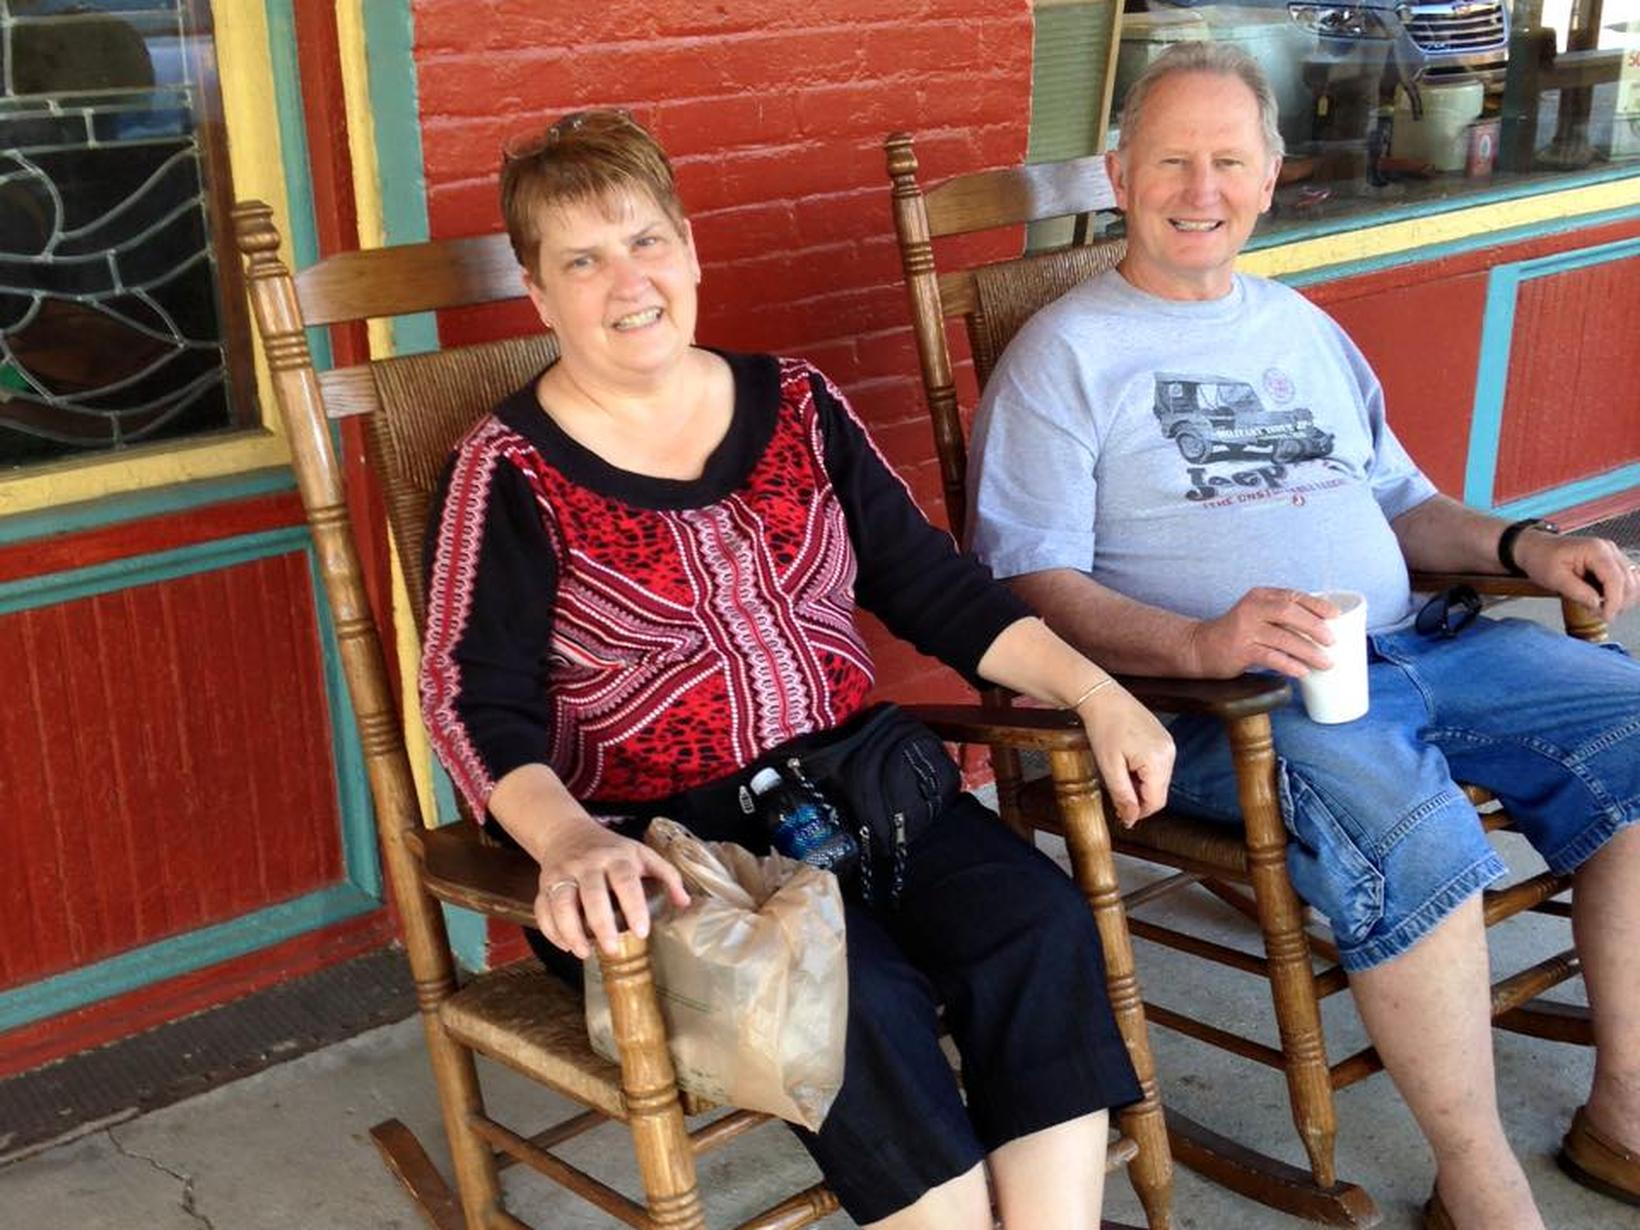 Cheryl & David from Dresden, Ohio, United States